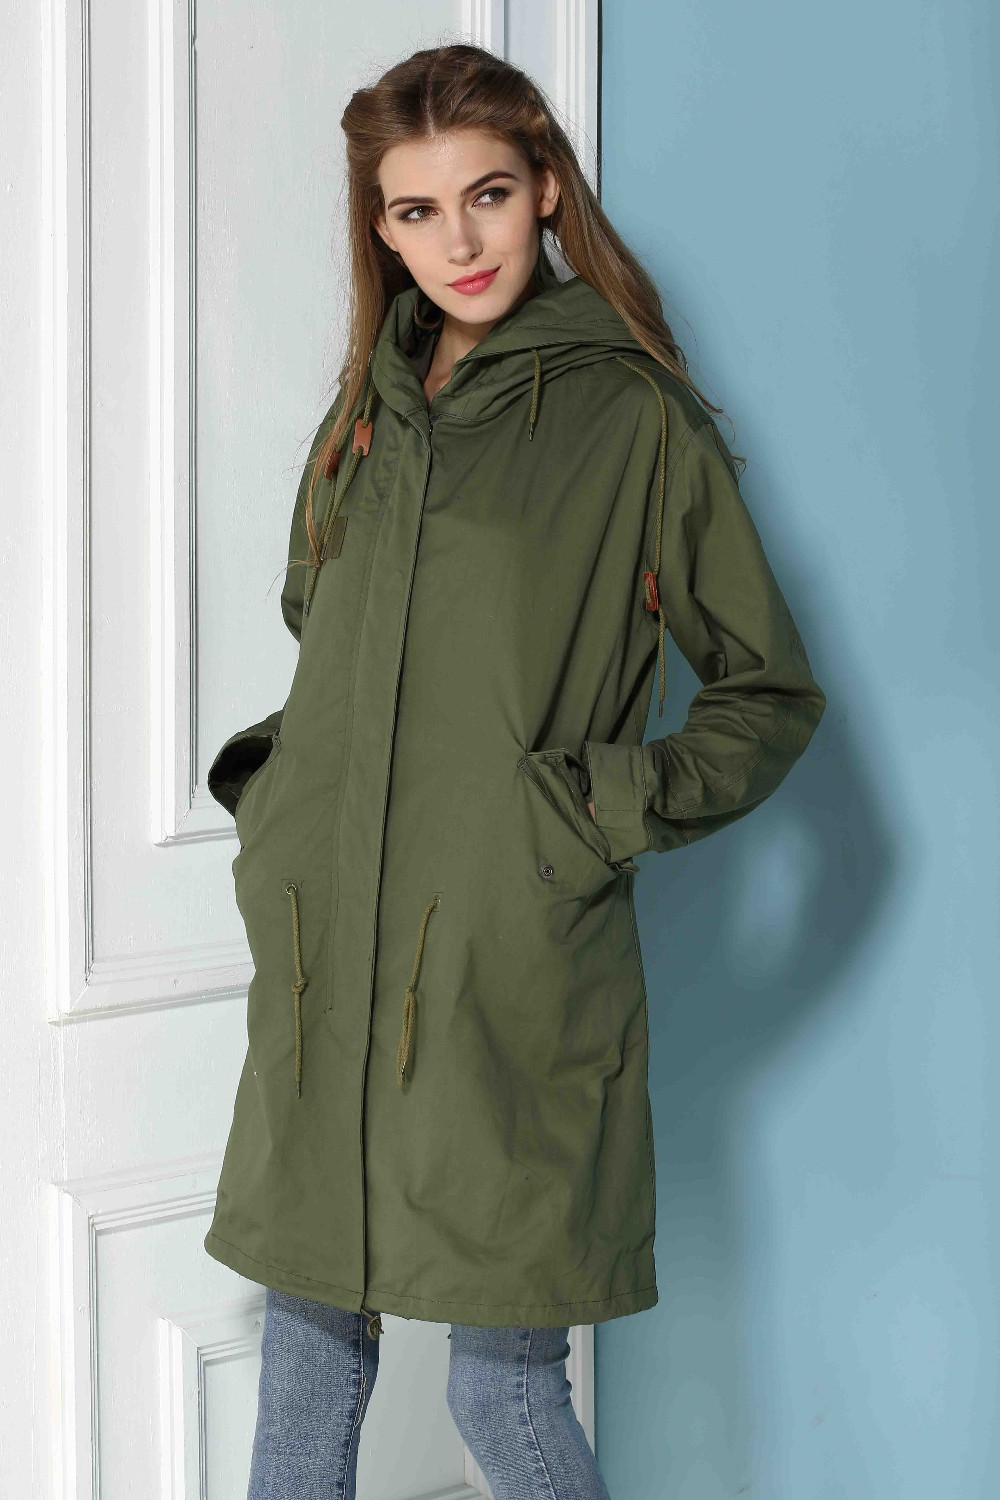 Wholesale long jacket cotton material from china fashion coat manufacturer